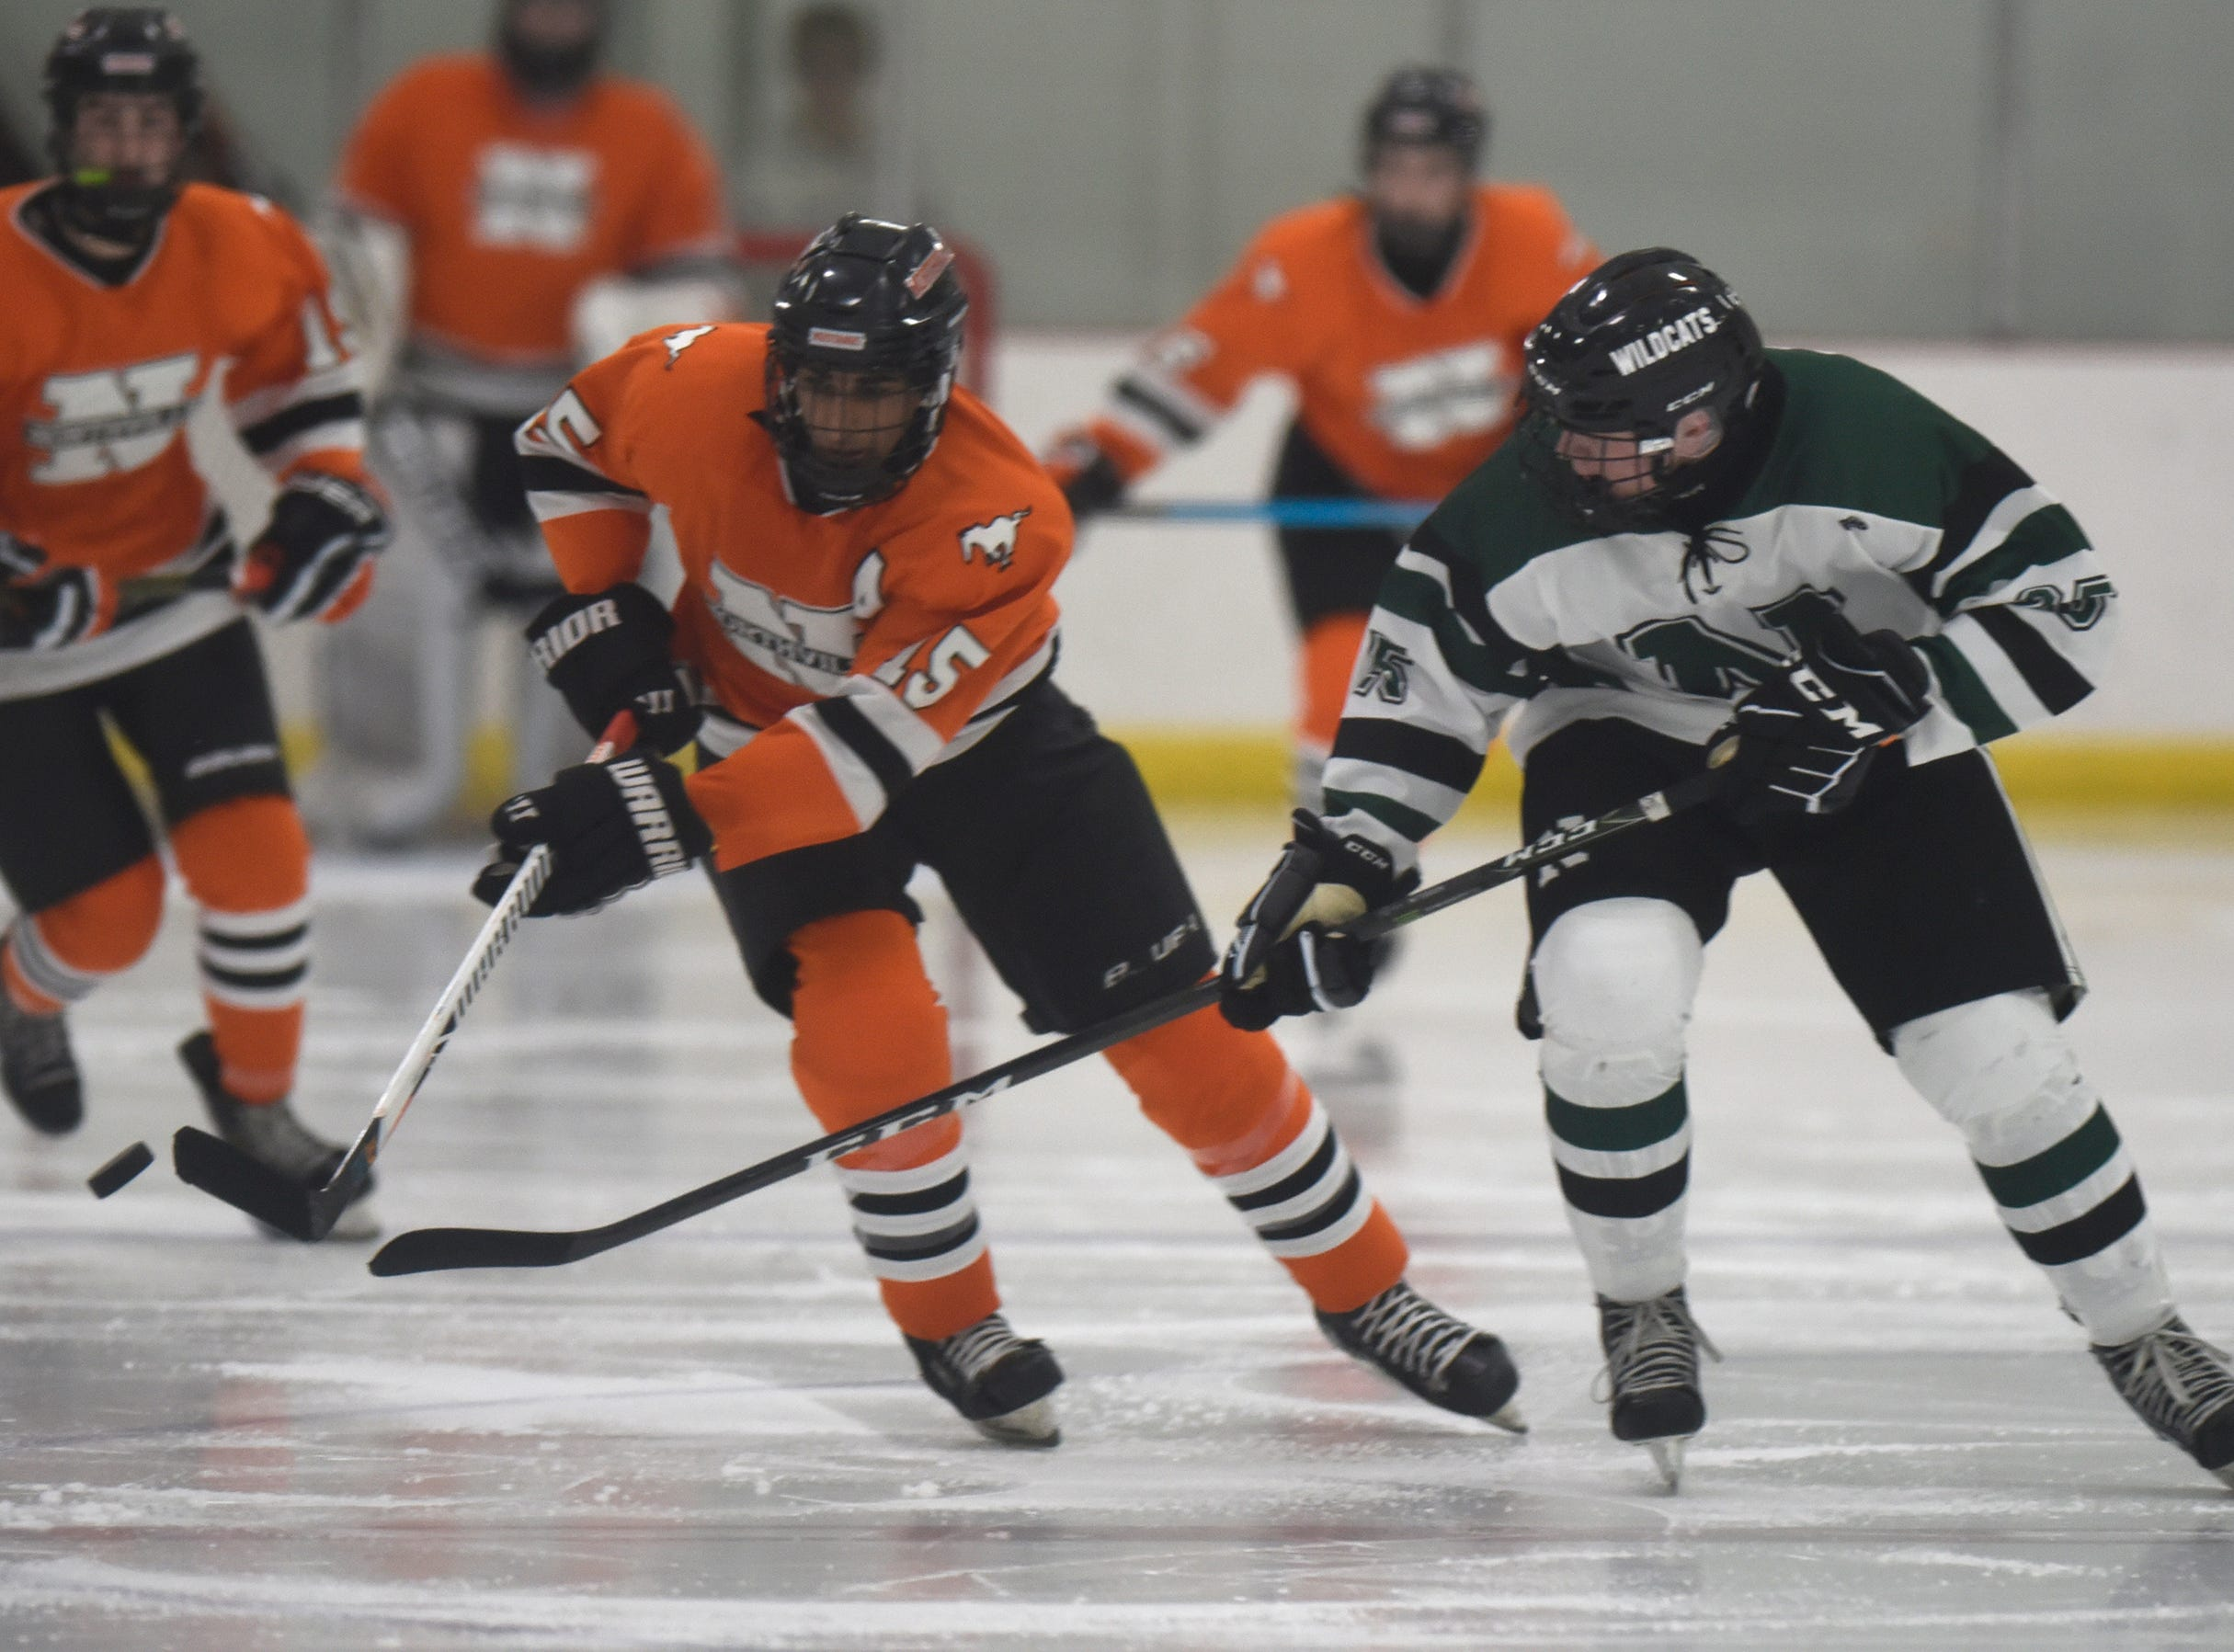 Northville forward Rohan Barad (15) and Novi forward Louis Wolff (23) during a KLAA West match up between rivals Novi and Northville played at Novi Ice Arena Nov. 20, 2018.